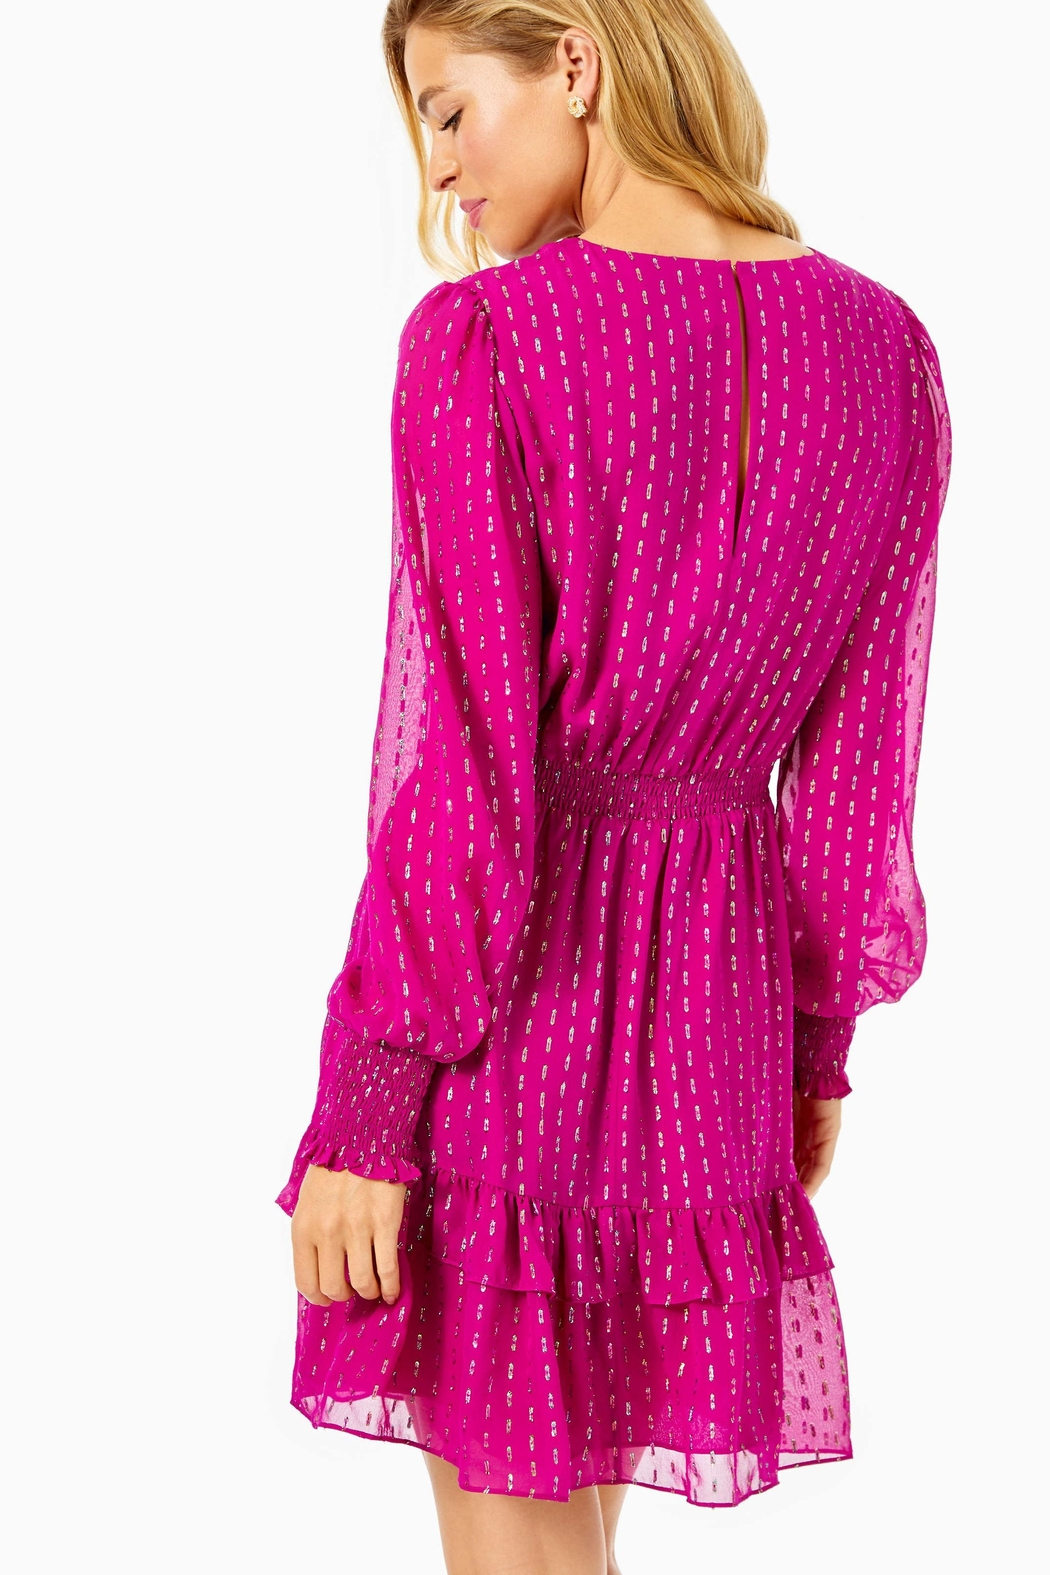 Lilly Pulitzer Dotti Ruffle Dress - Front Full Image